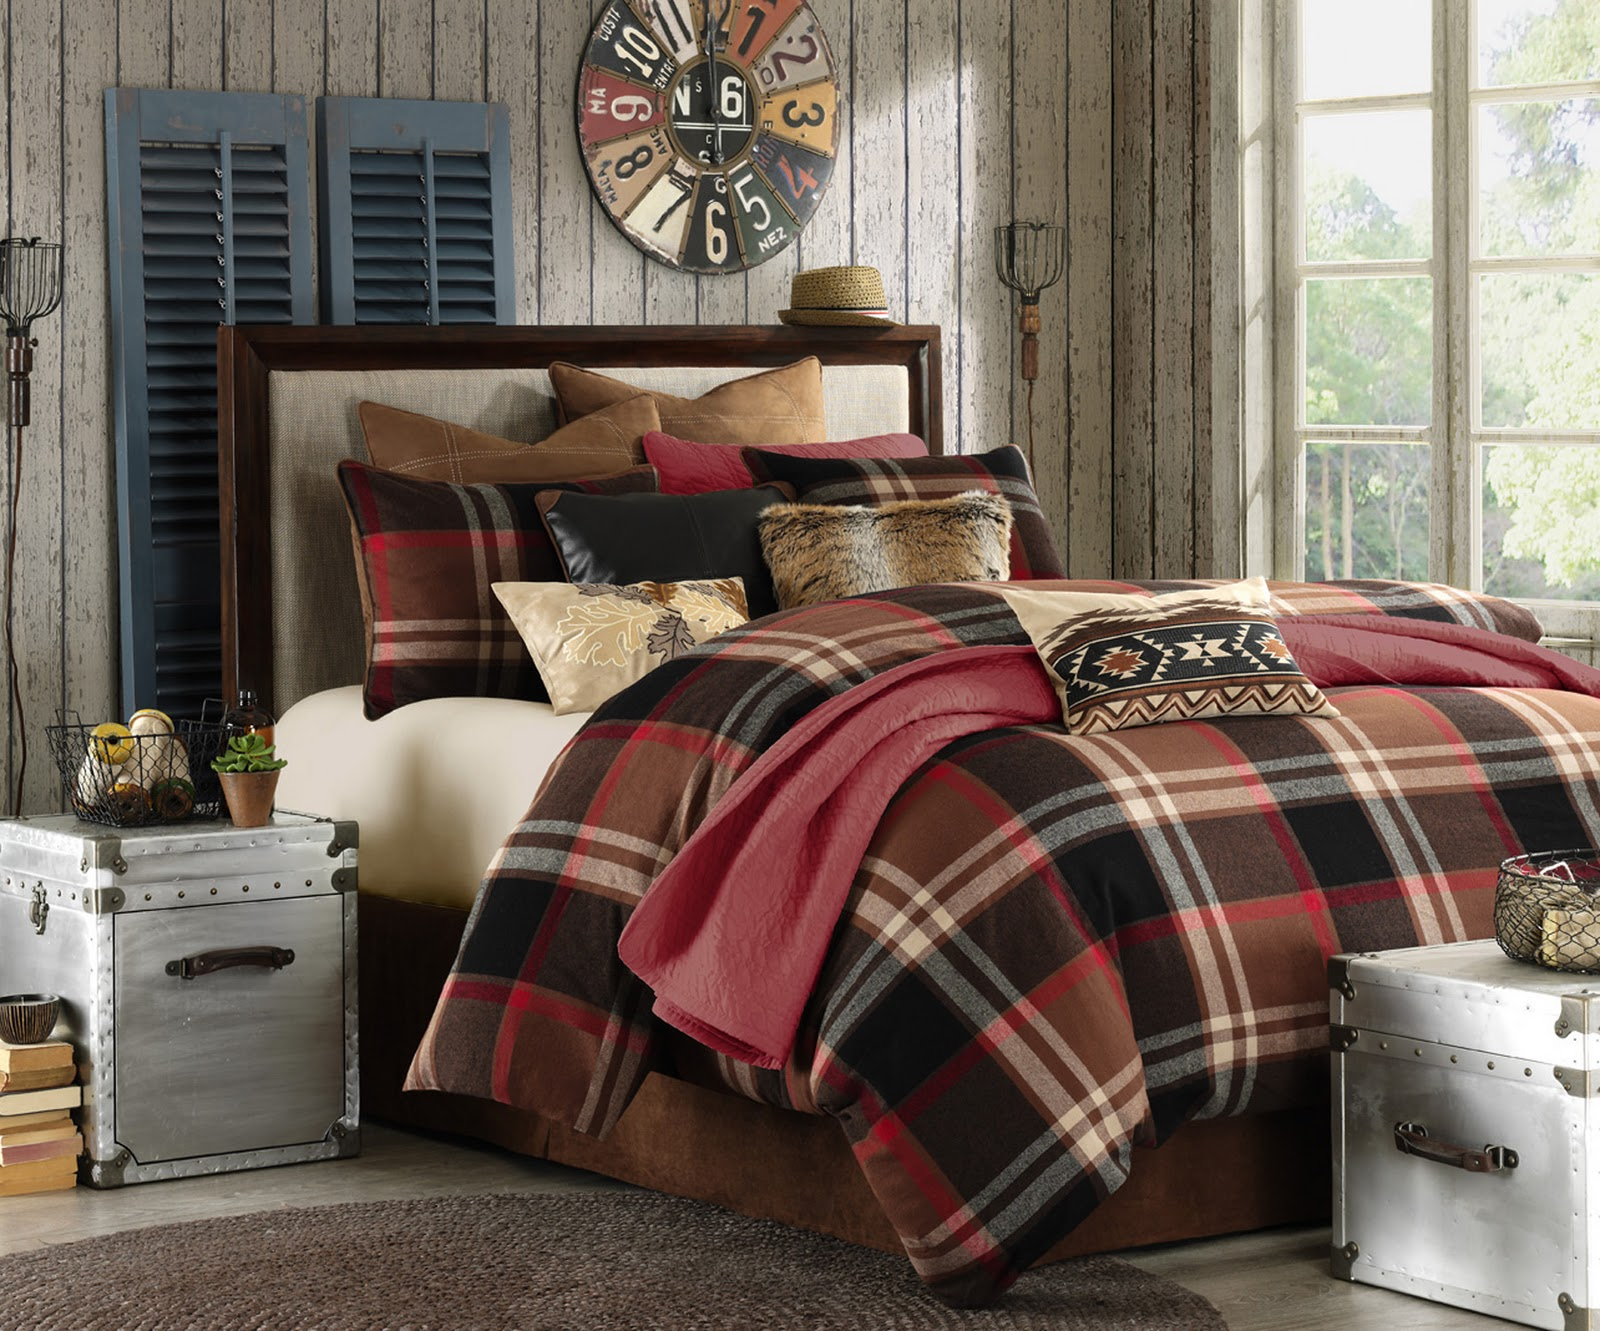 Gift Amp Home Today New Bedding In Transitional Styles